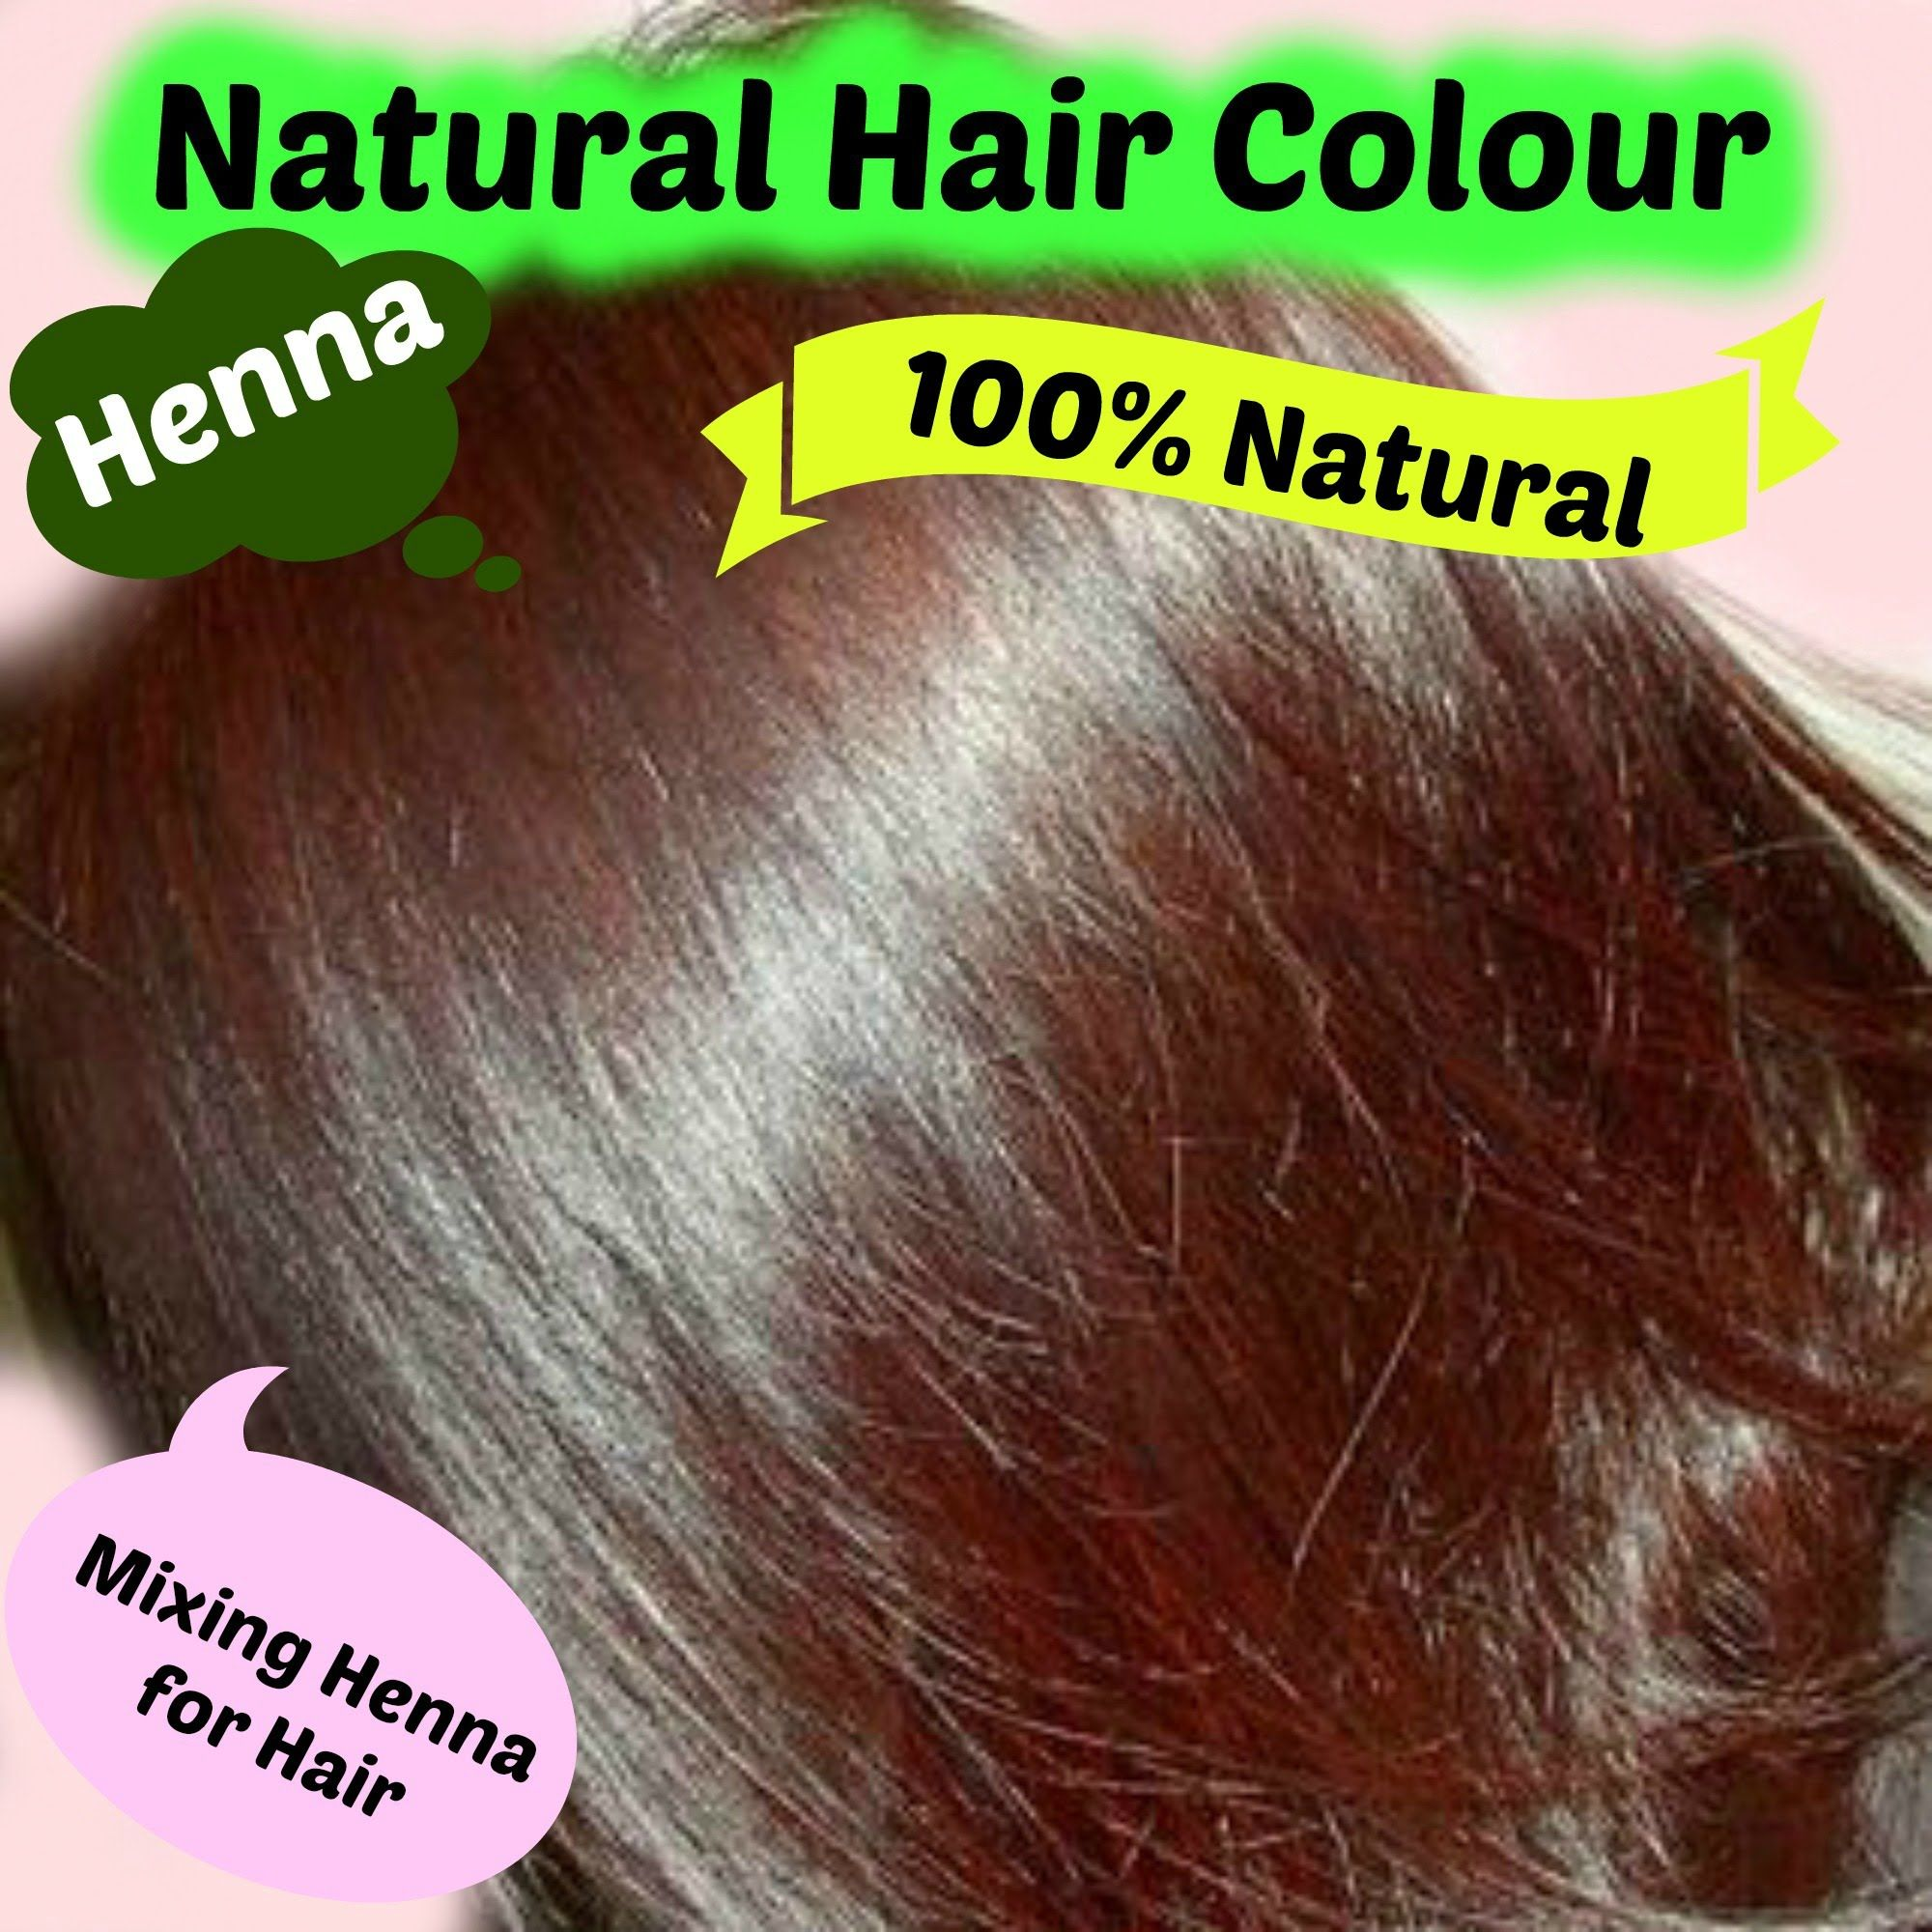 Henna For Hair In English Natural Hair Colour Hair And Beauty